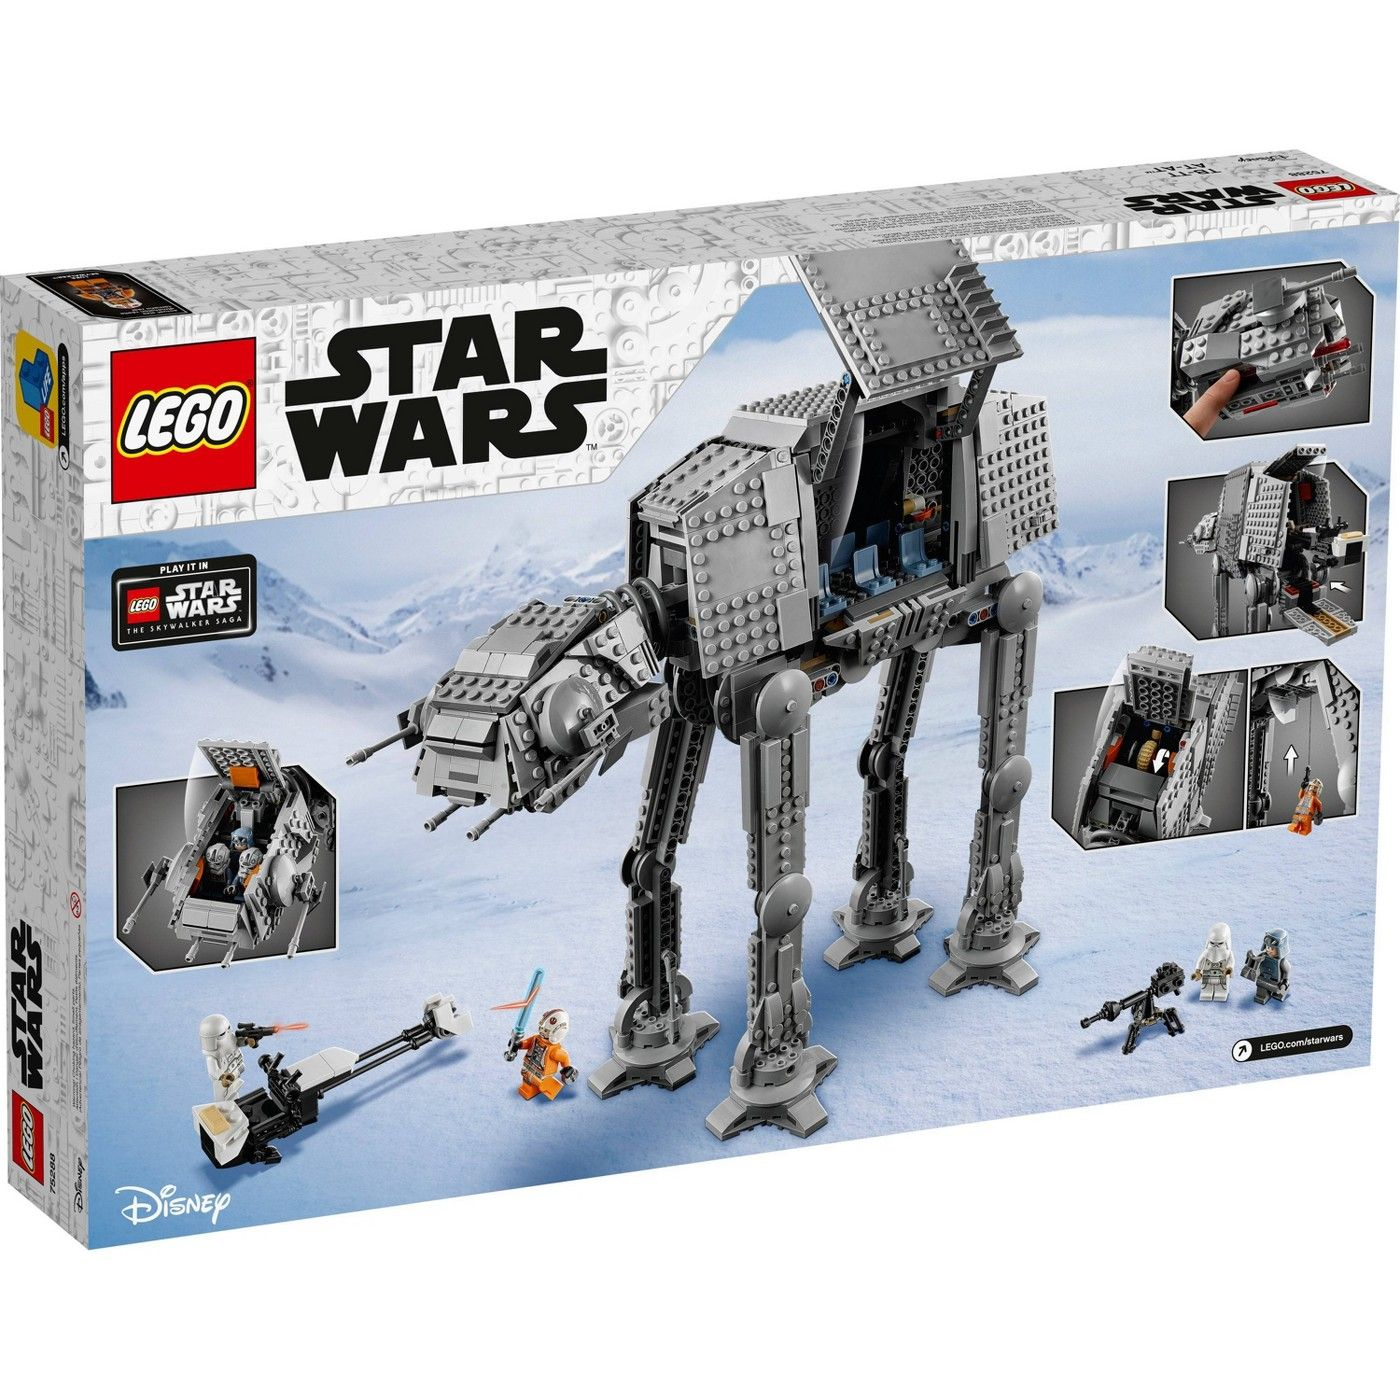 Lego Star Wars At At Building Kit Awesome At At Walker Building Toy For Creative Play 75288 In 2021 Star Wars Set Classic Star Wars Lego Star Wars Sets